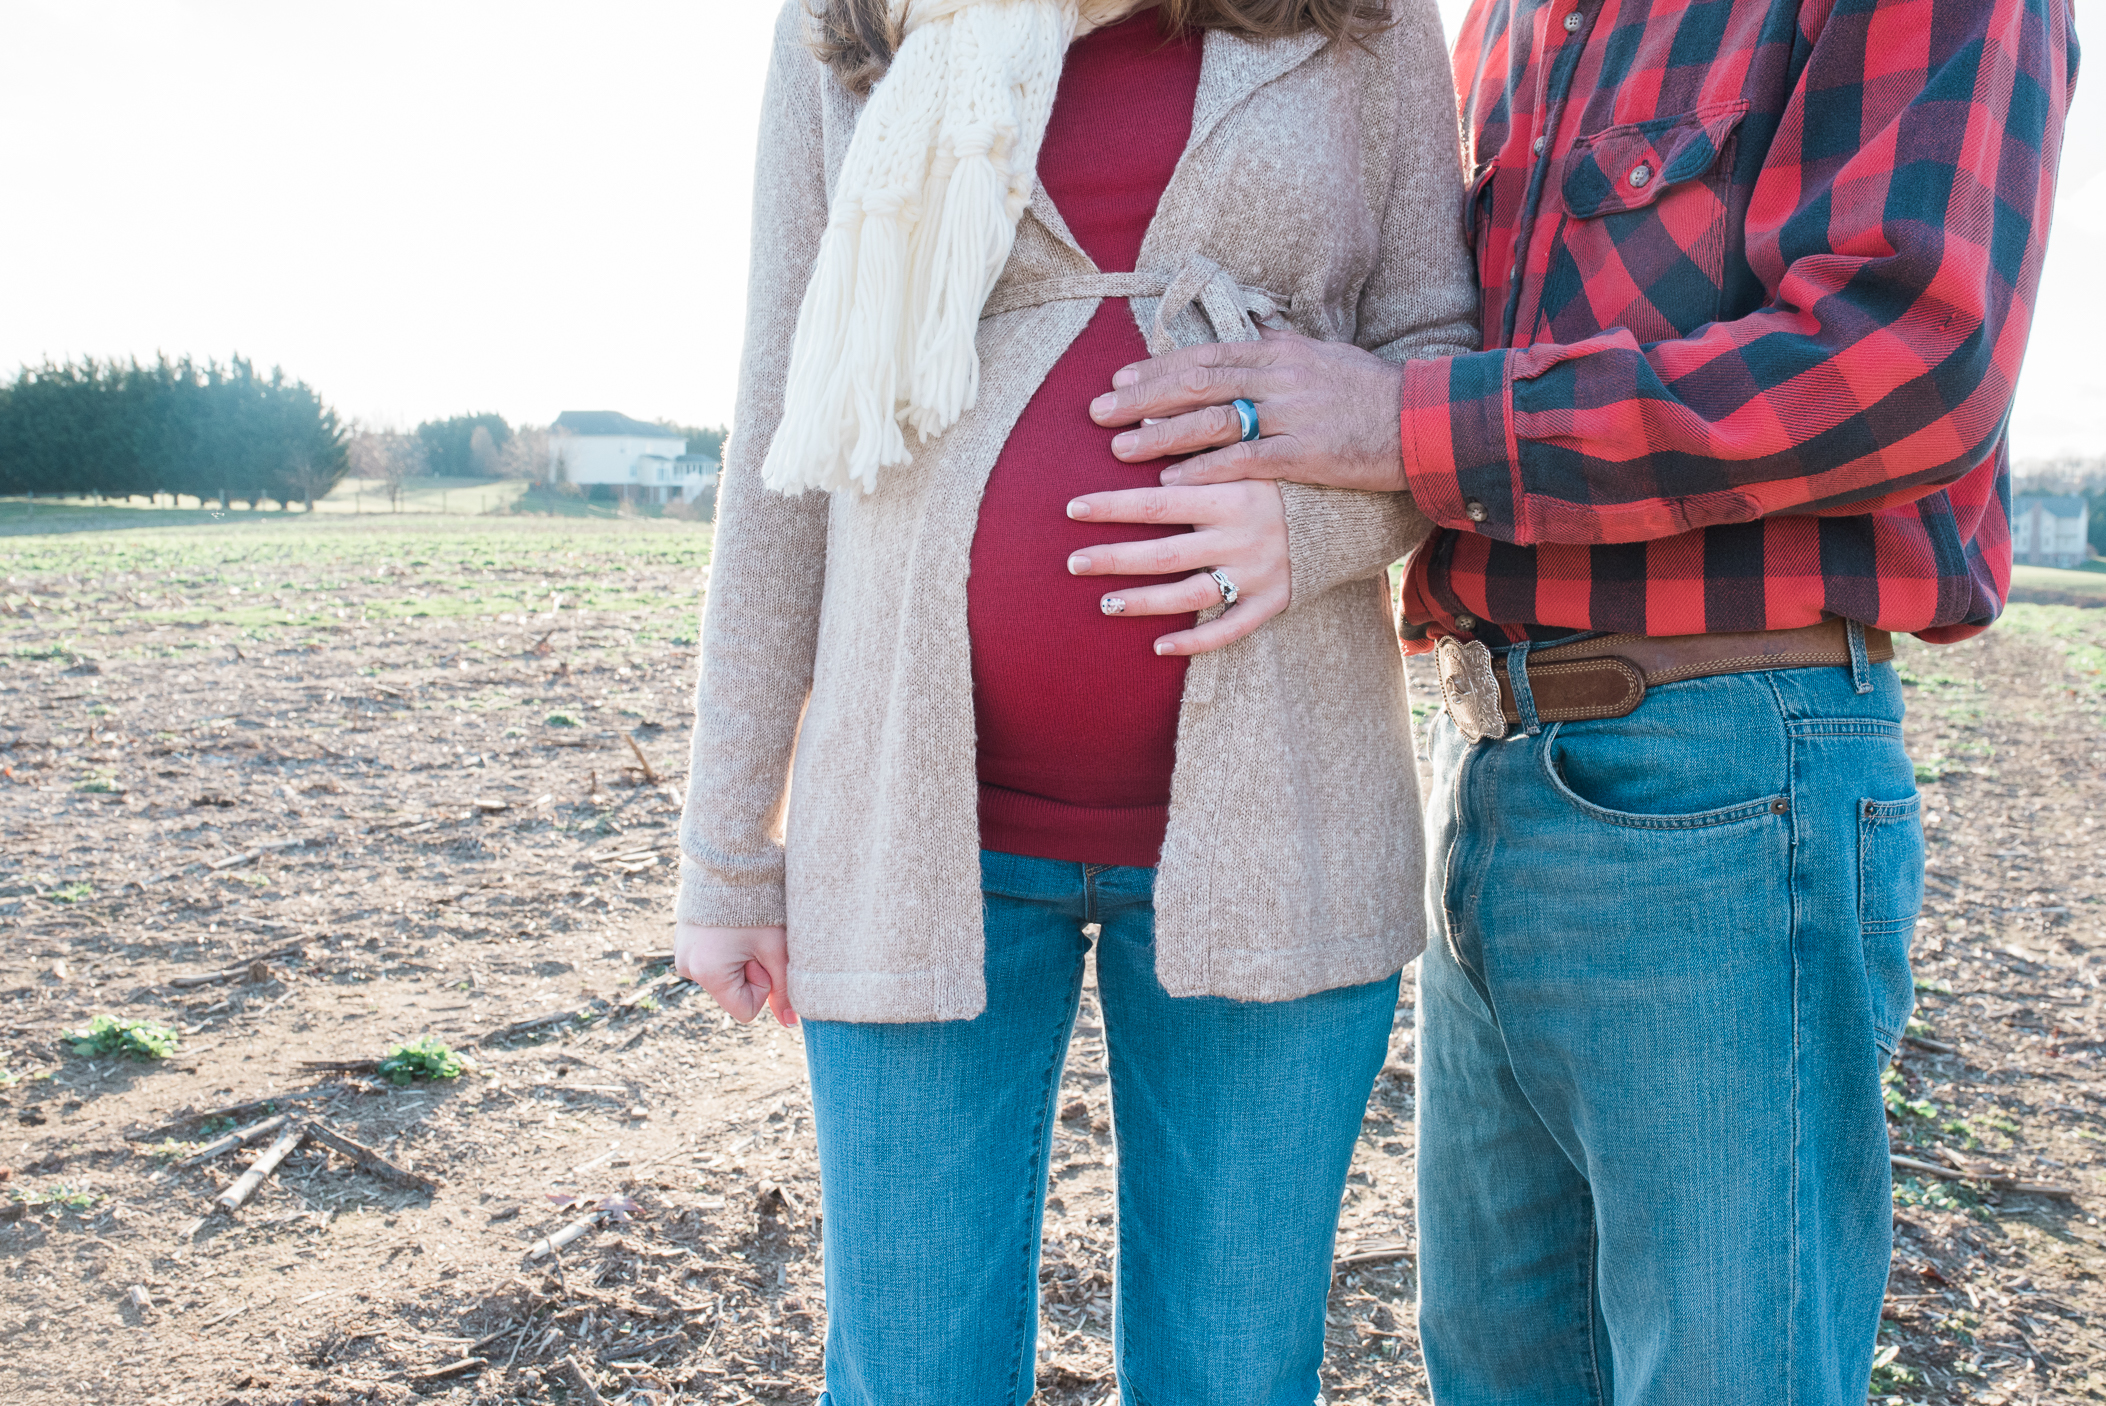 Harford-county-maryland-photographer-lifestyle-family-maternity-engagement-photos-by-breanna-kuhlmann-6.jpg